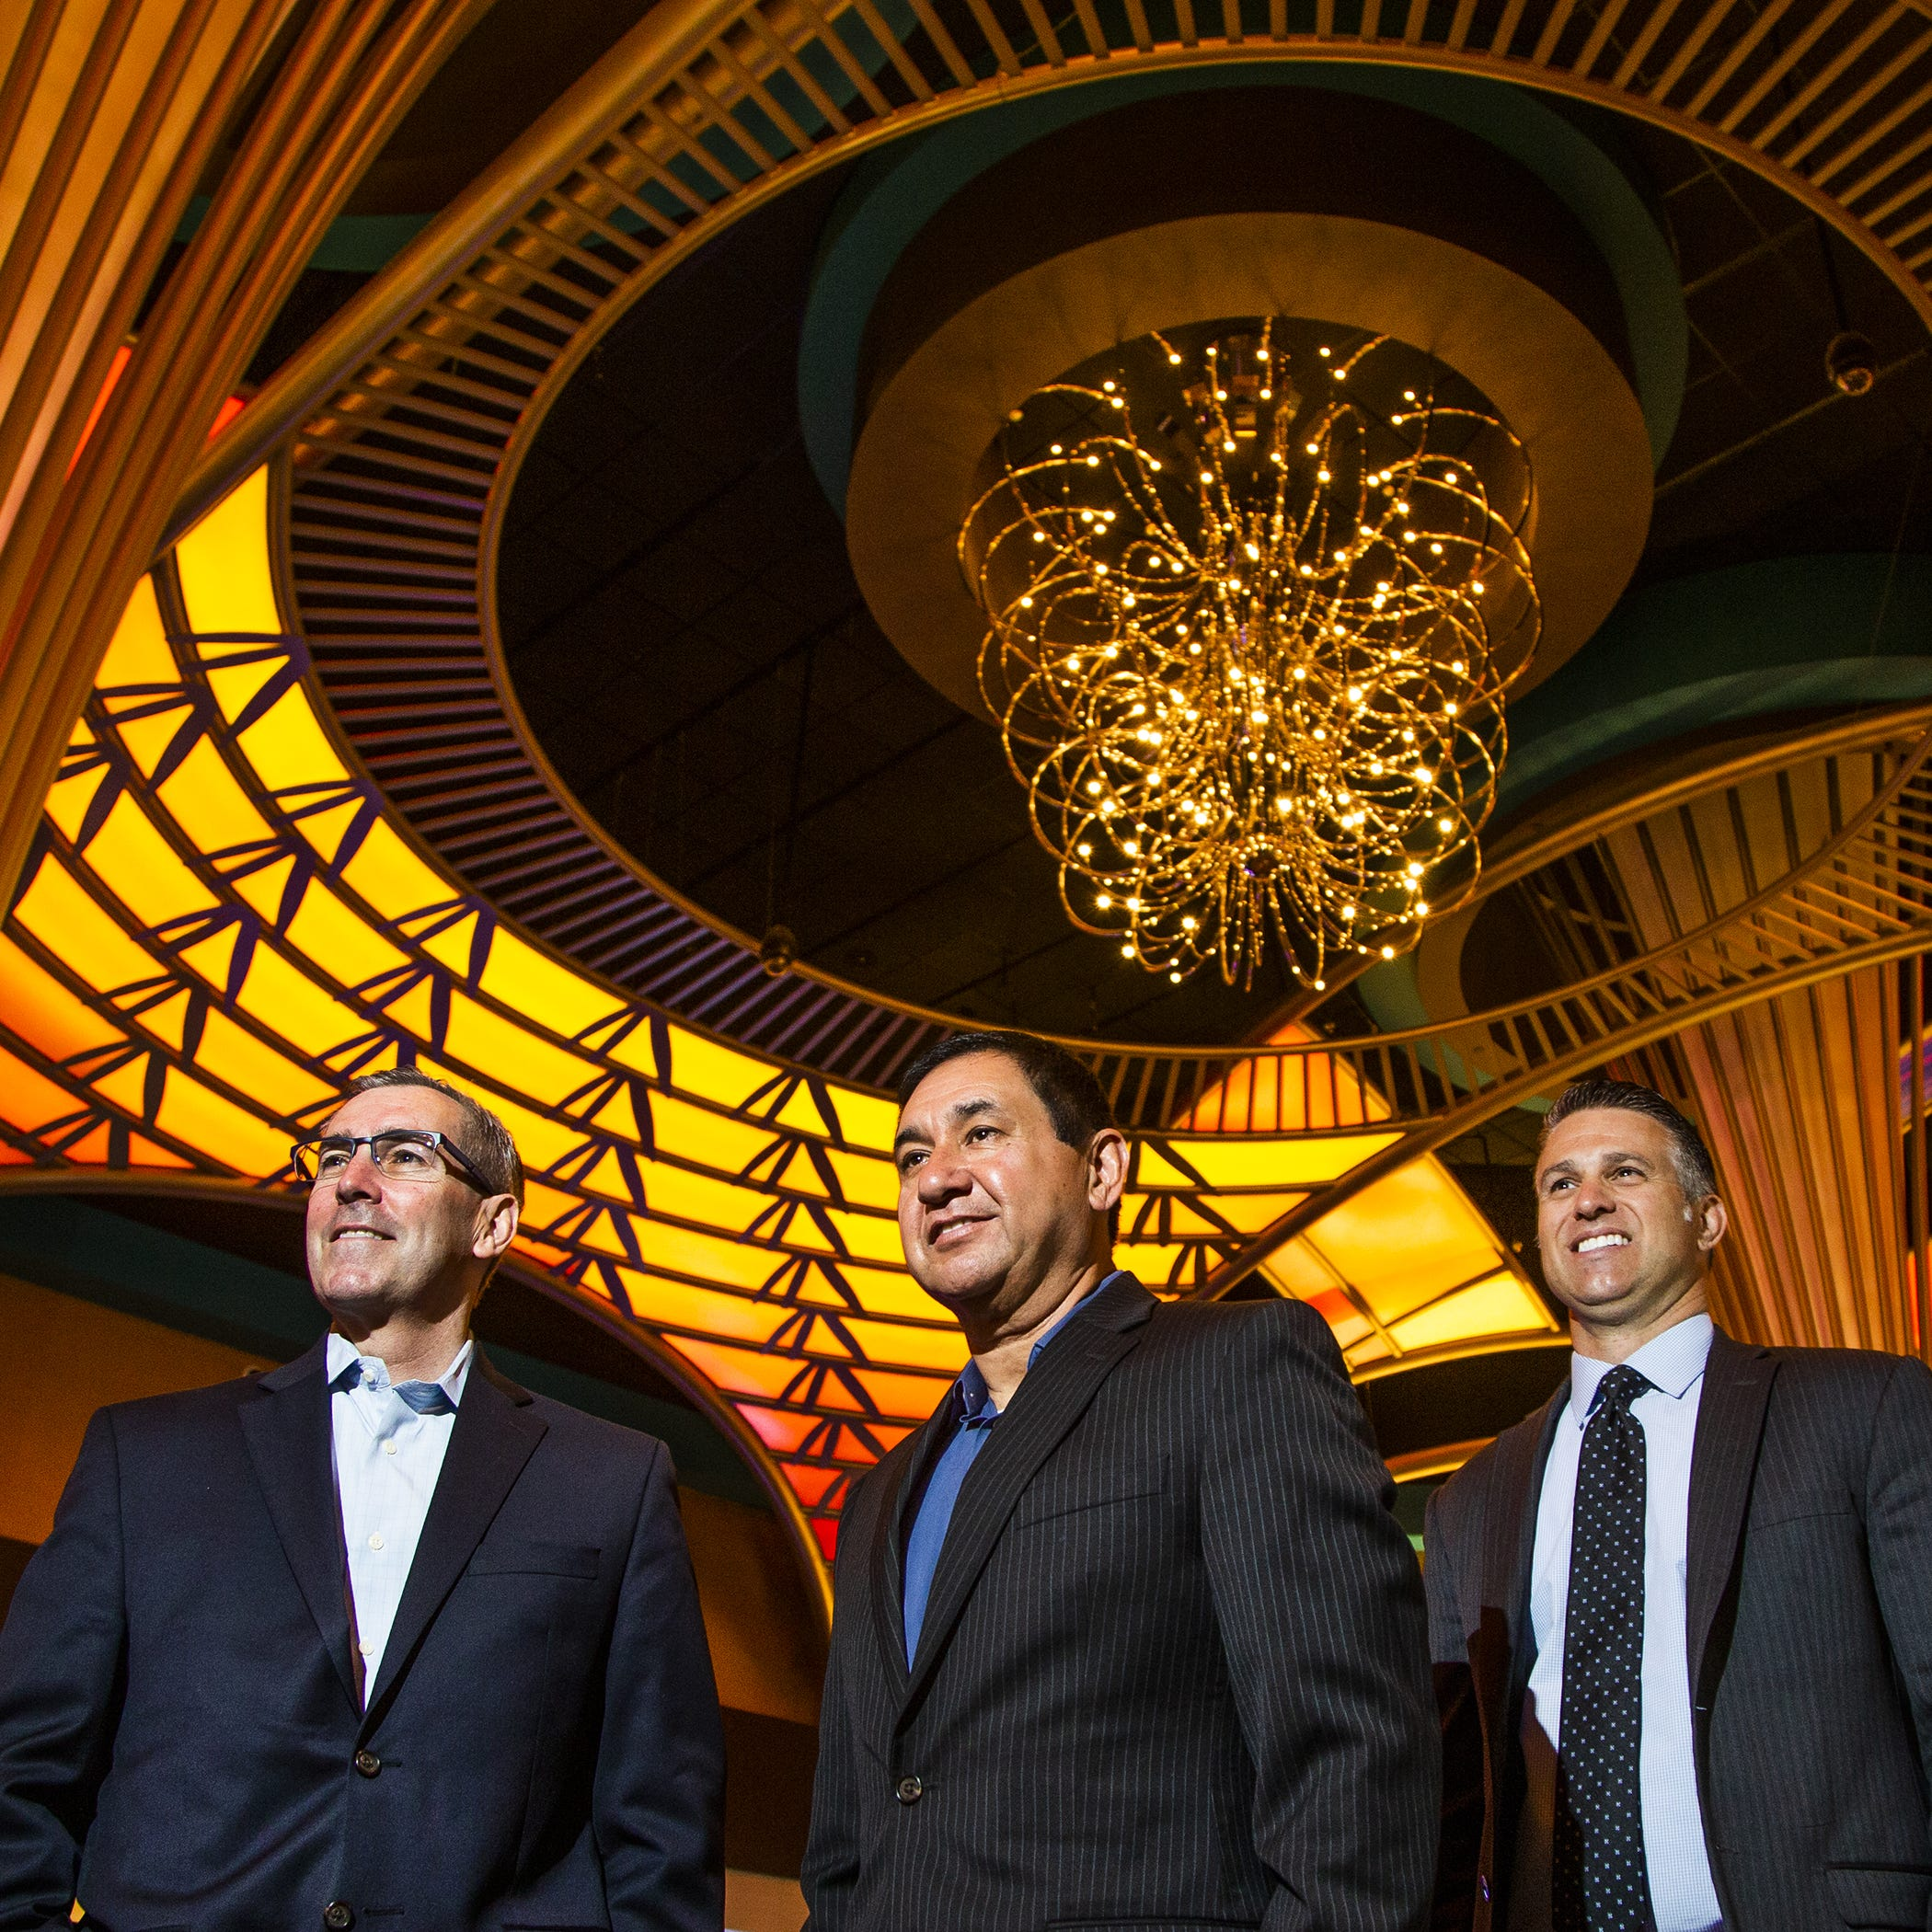 $180 million renovation marks 25 years of successful Harrah's partnership with Ak-Chin tribe